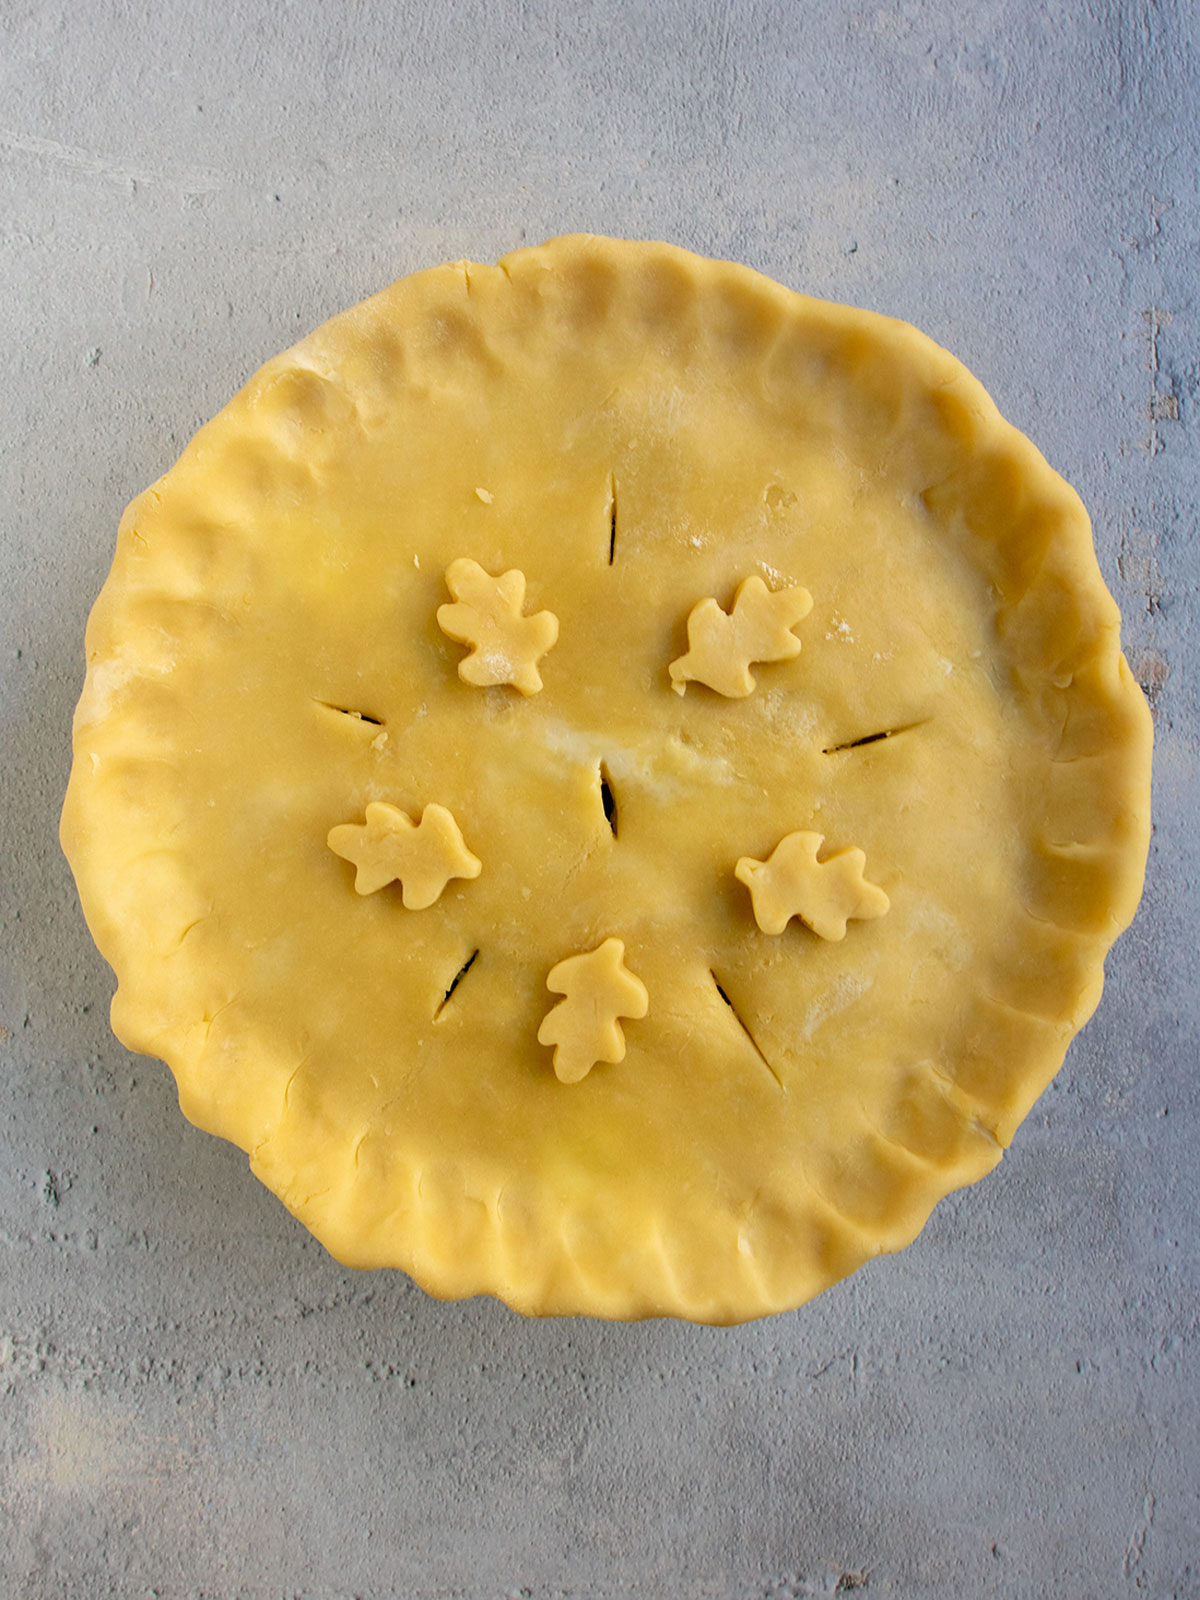 turkey pot pie covered with second crust and slits made with leafy crust decorations added